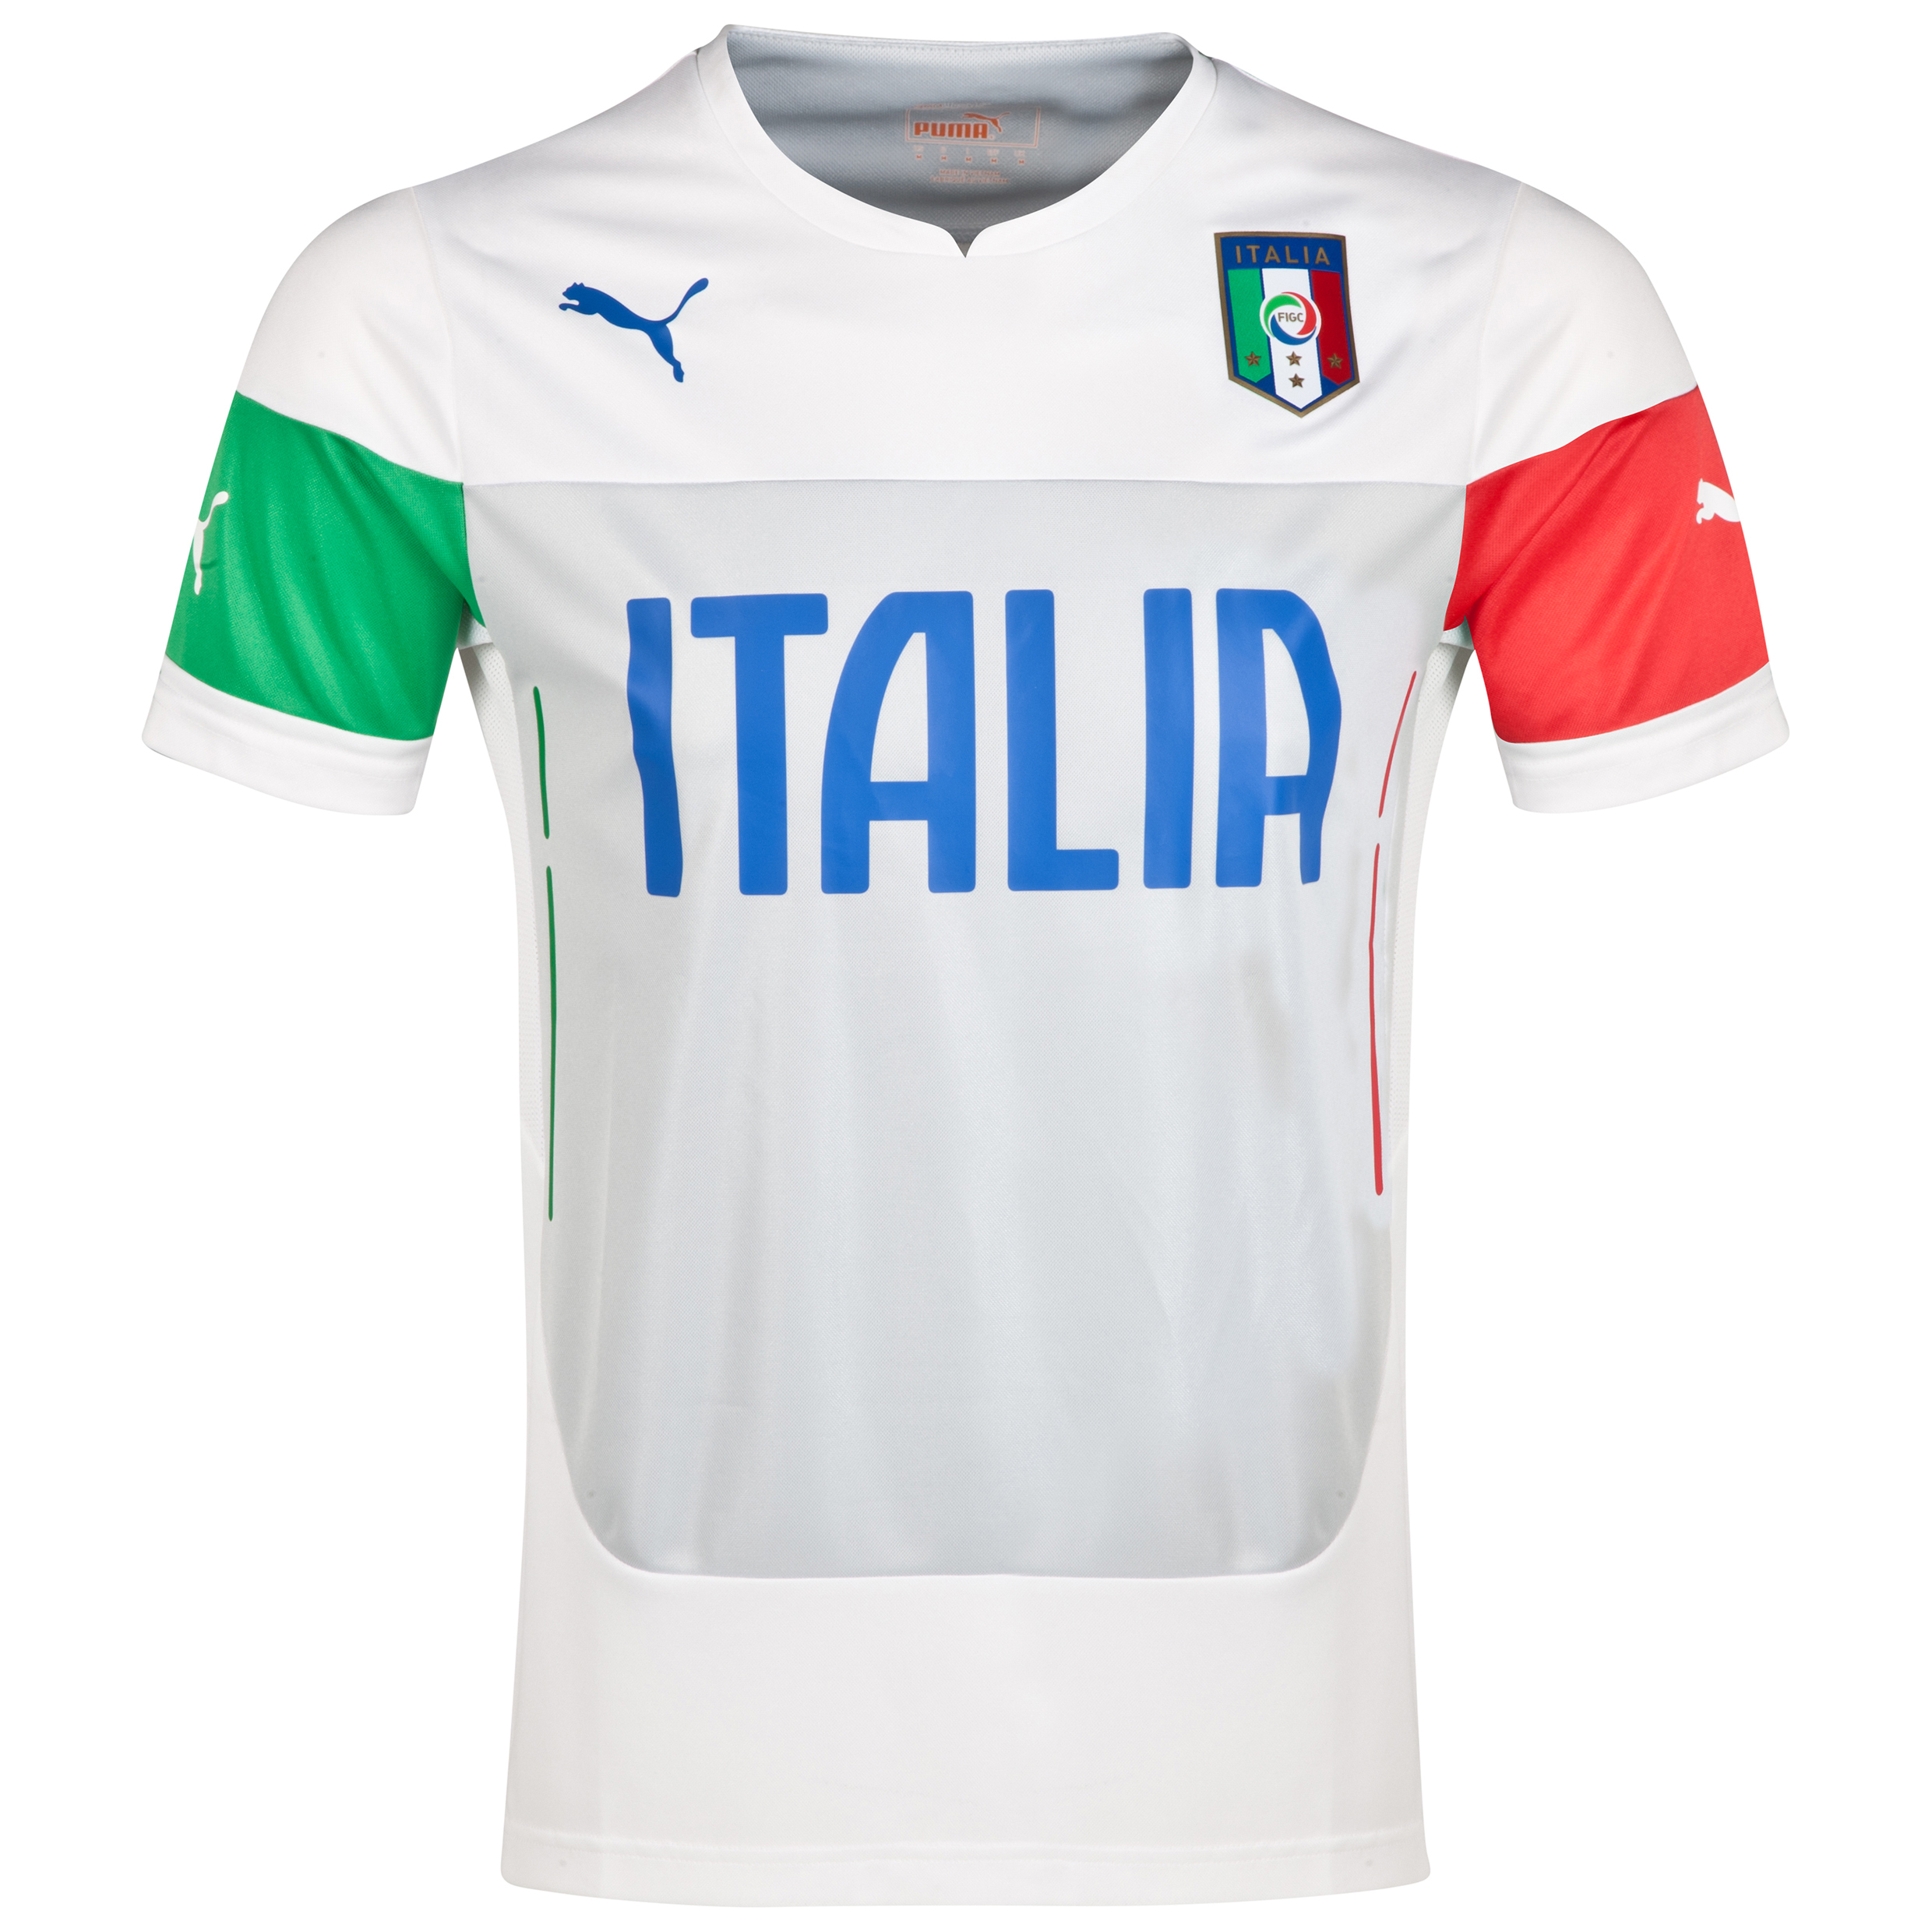 Italy Training Jersey - White